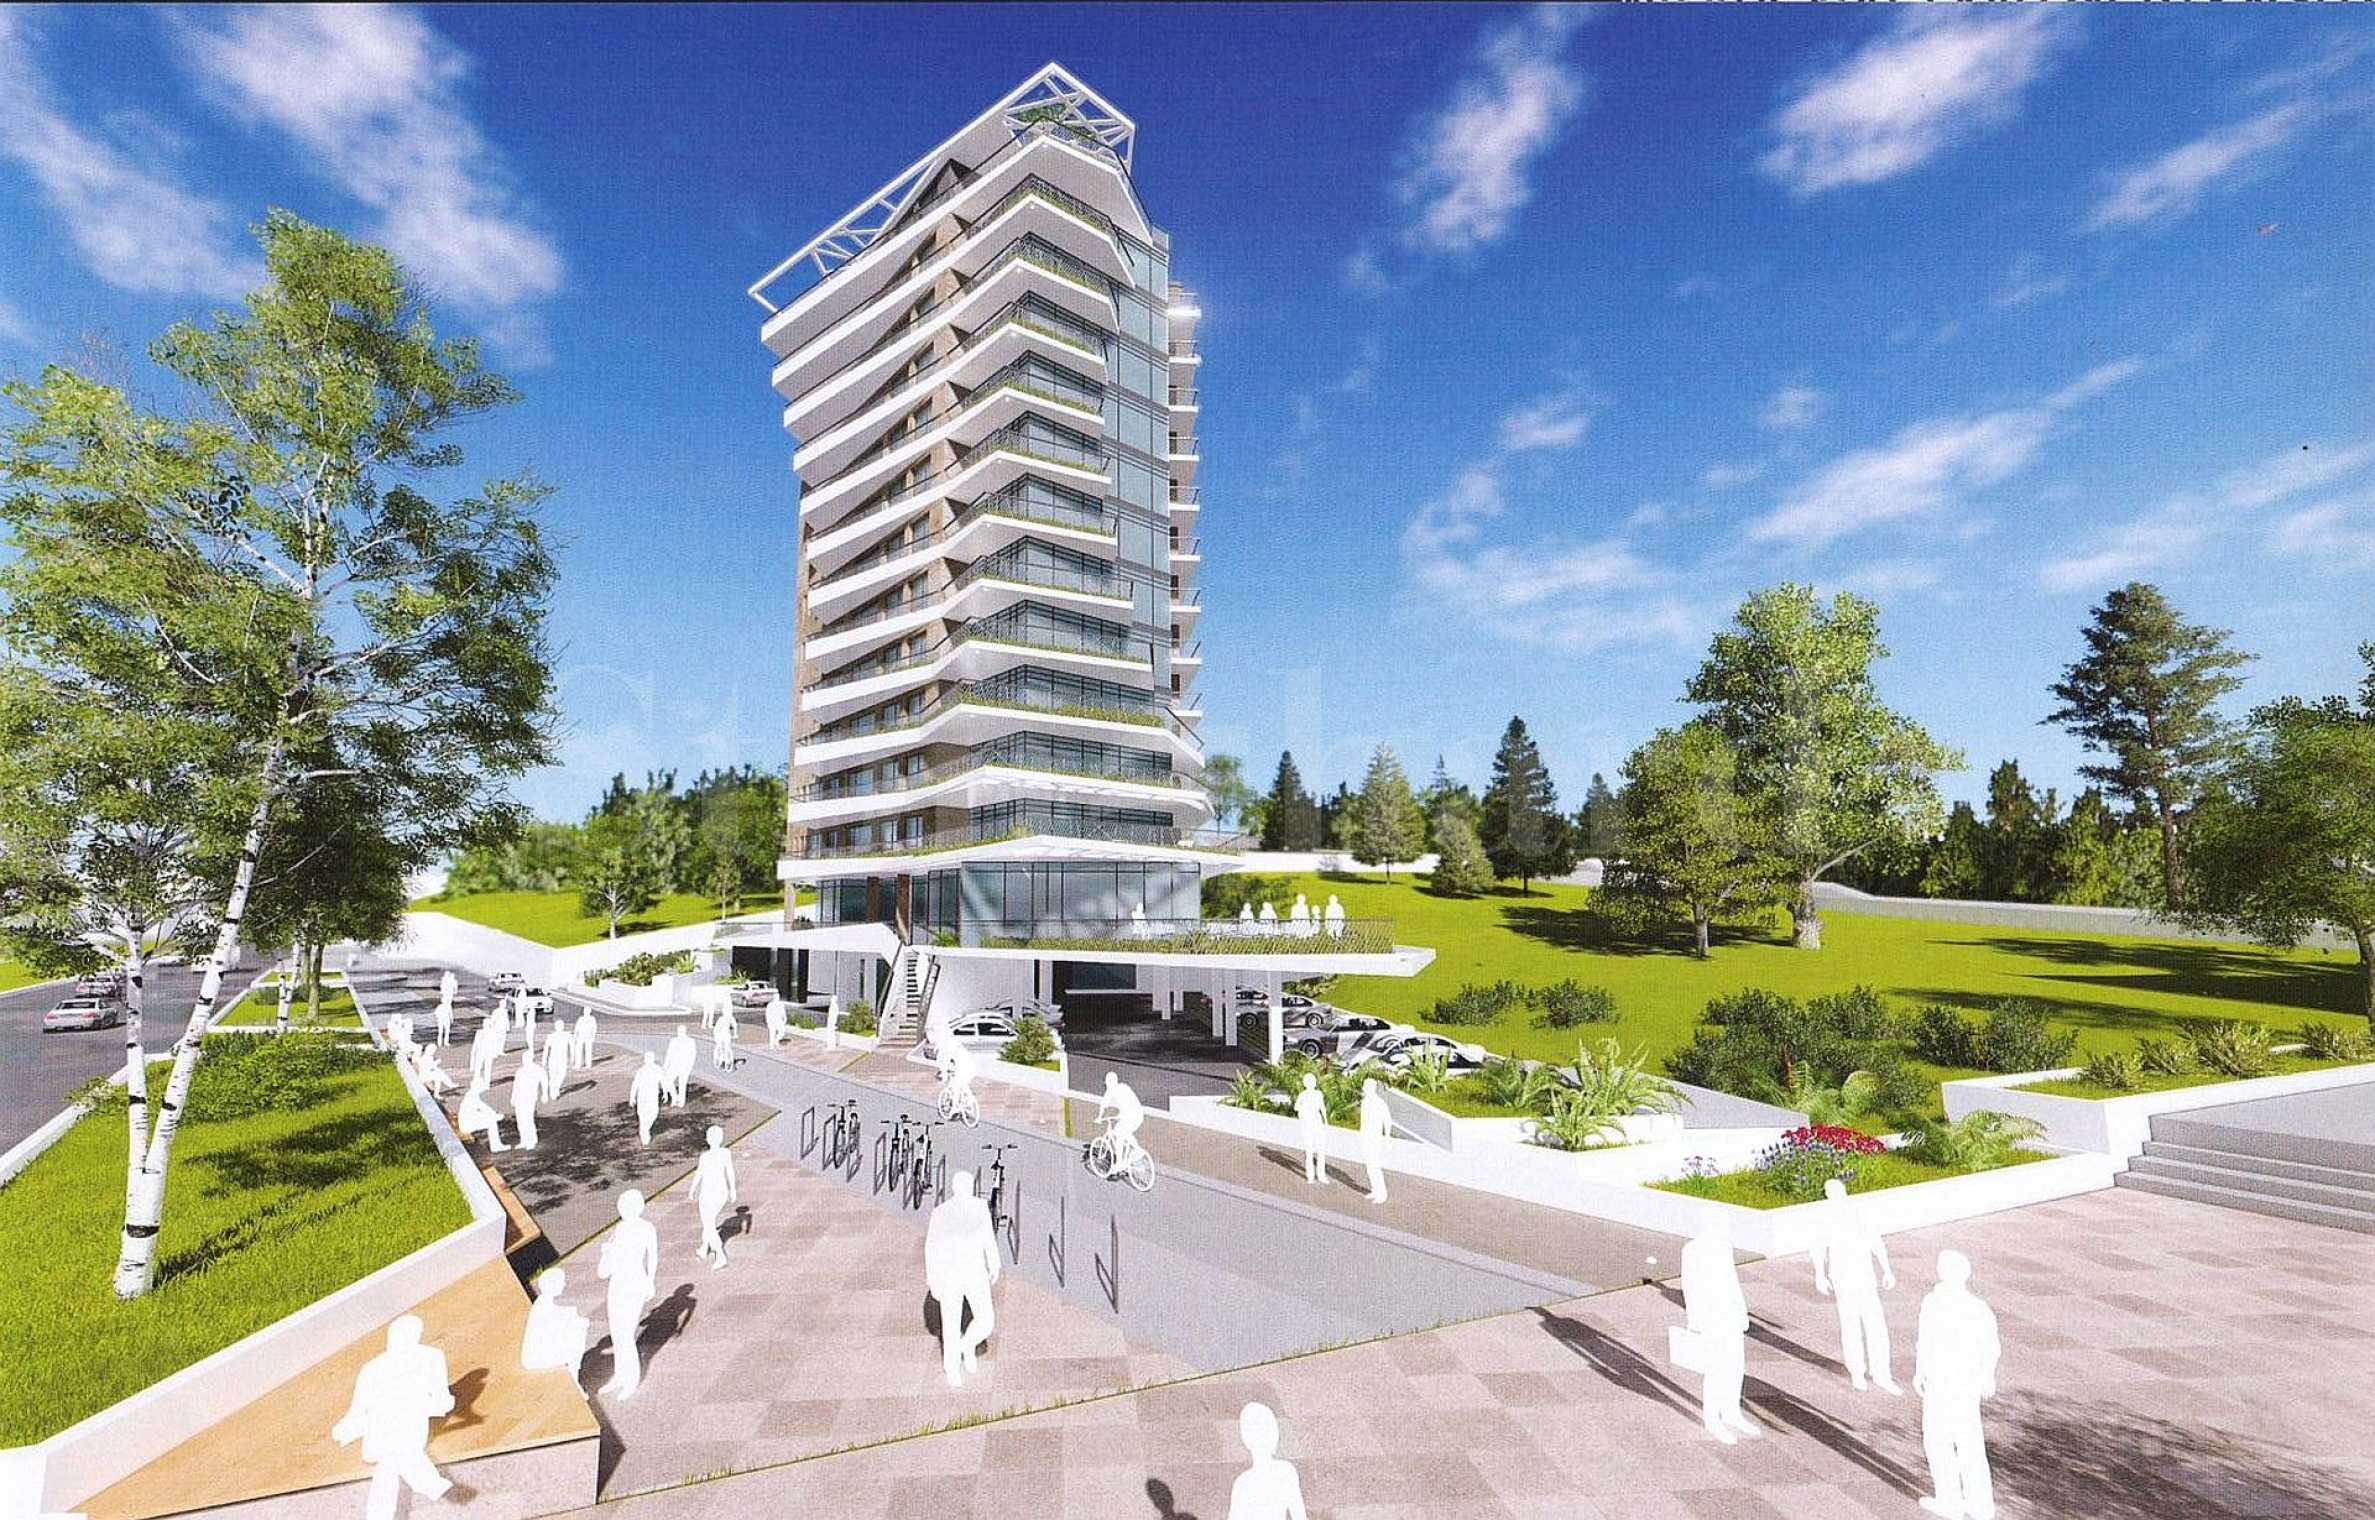 New complex with unique modern architecture in the the city of Varna, Bulgaria1 - Stonehard